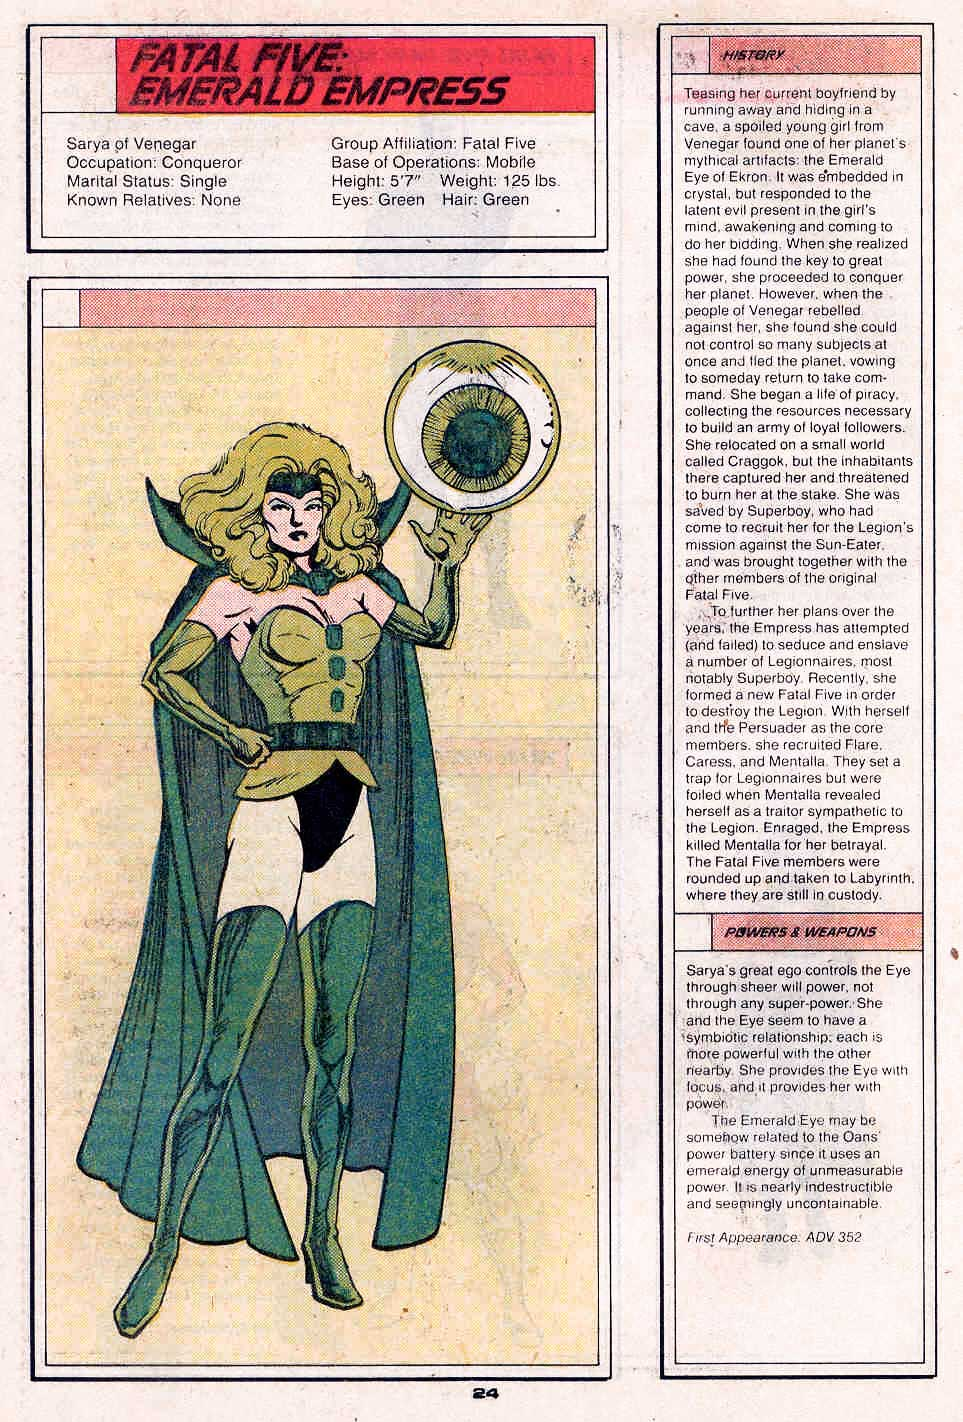 Emerald Empress by Colleen Doran - Who's Who in the Legion of Super-Heroes #2